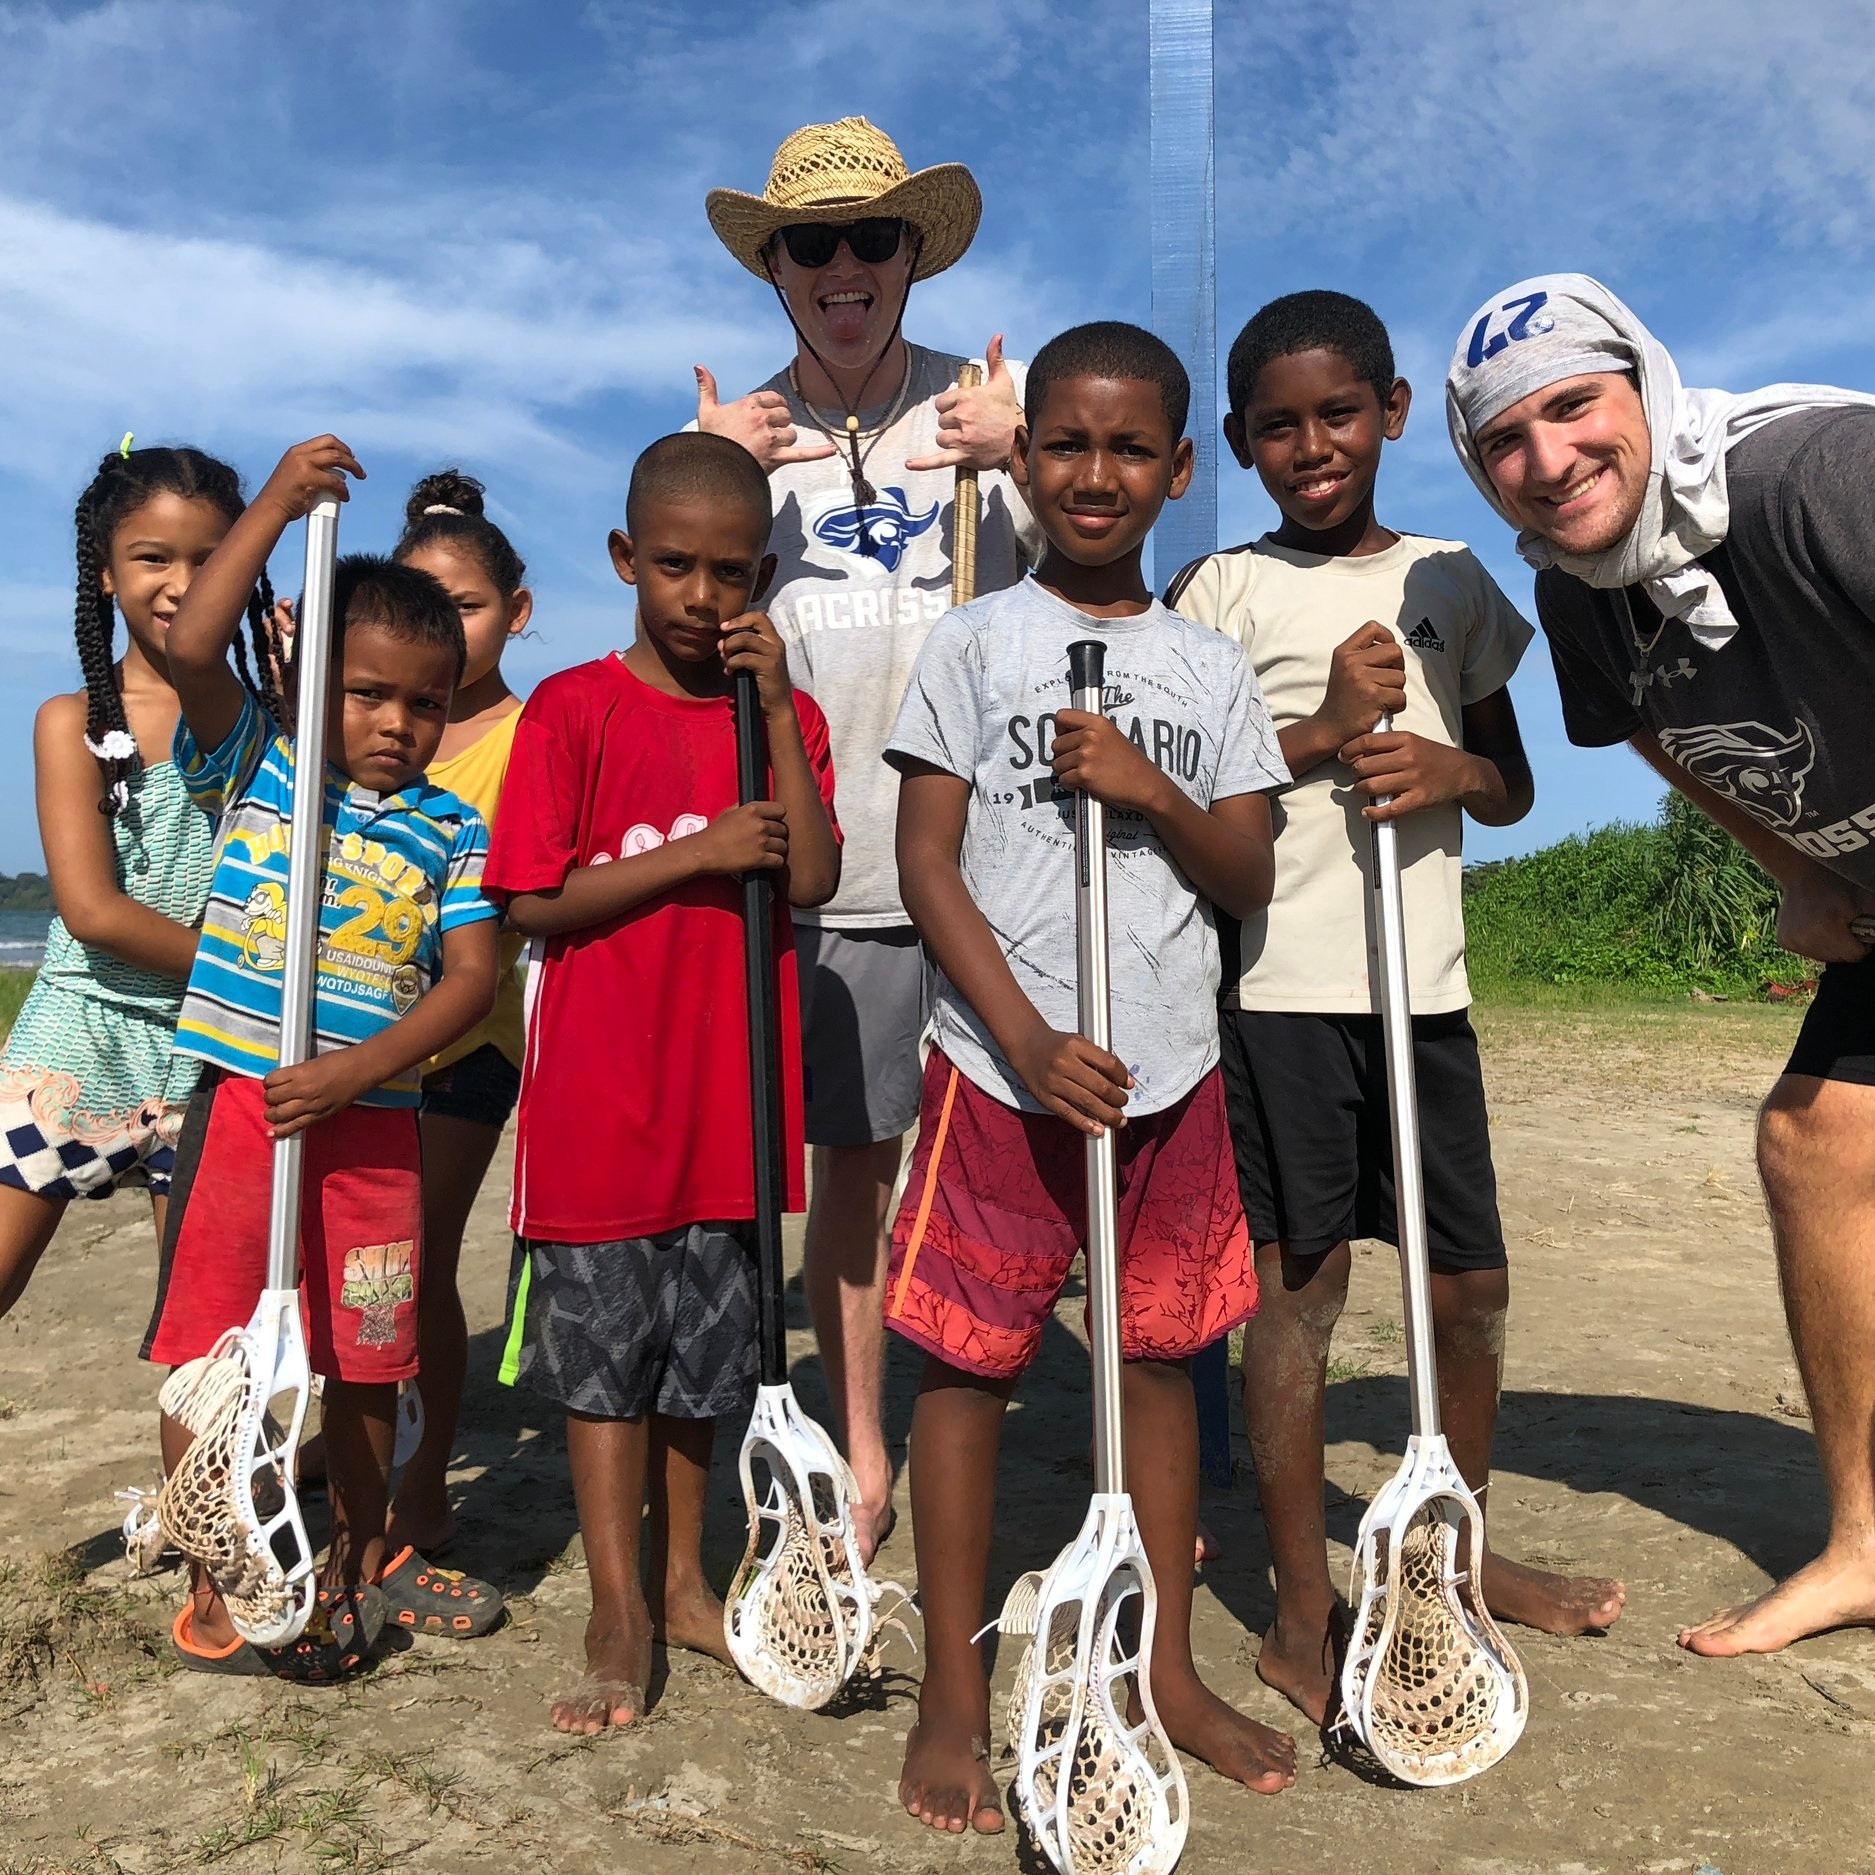 Anthony and teammates at LtN Practice during W&L and CNU Lacrosse's service trip week.